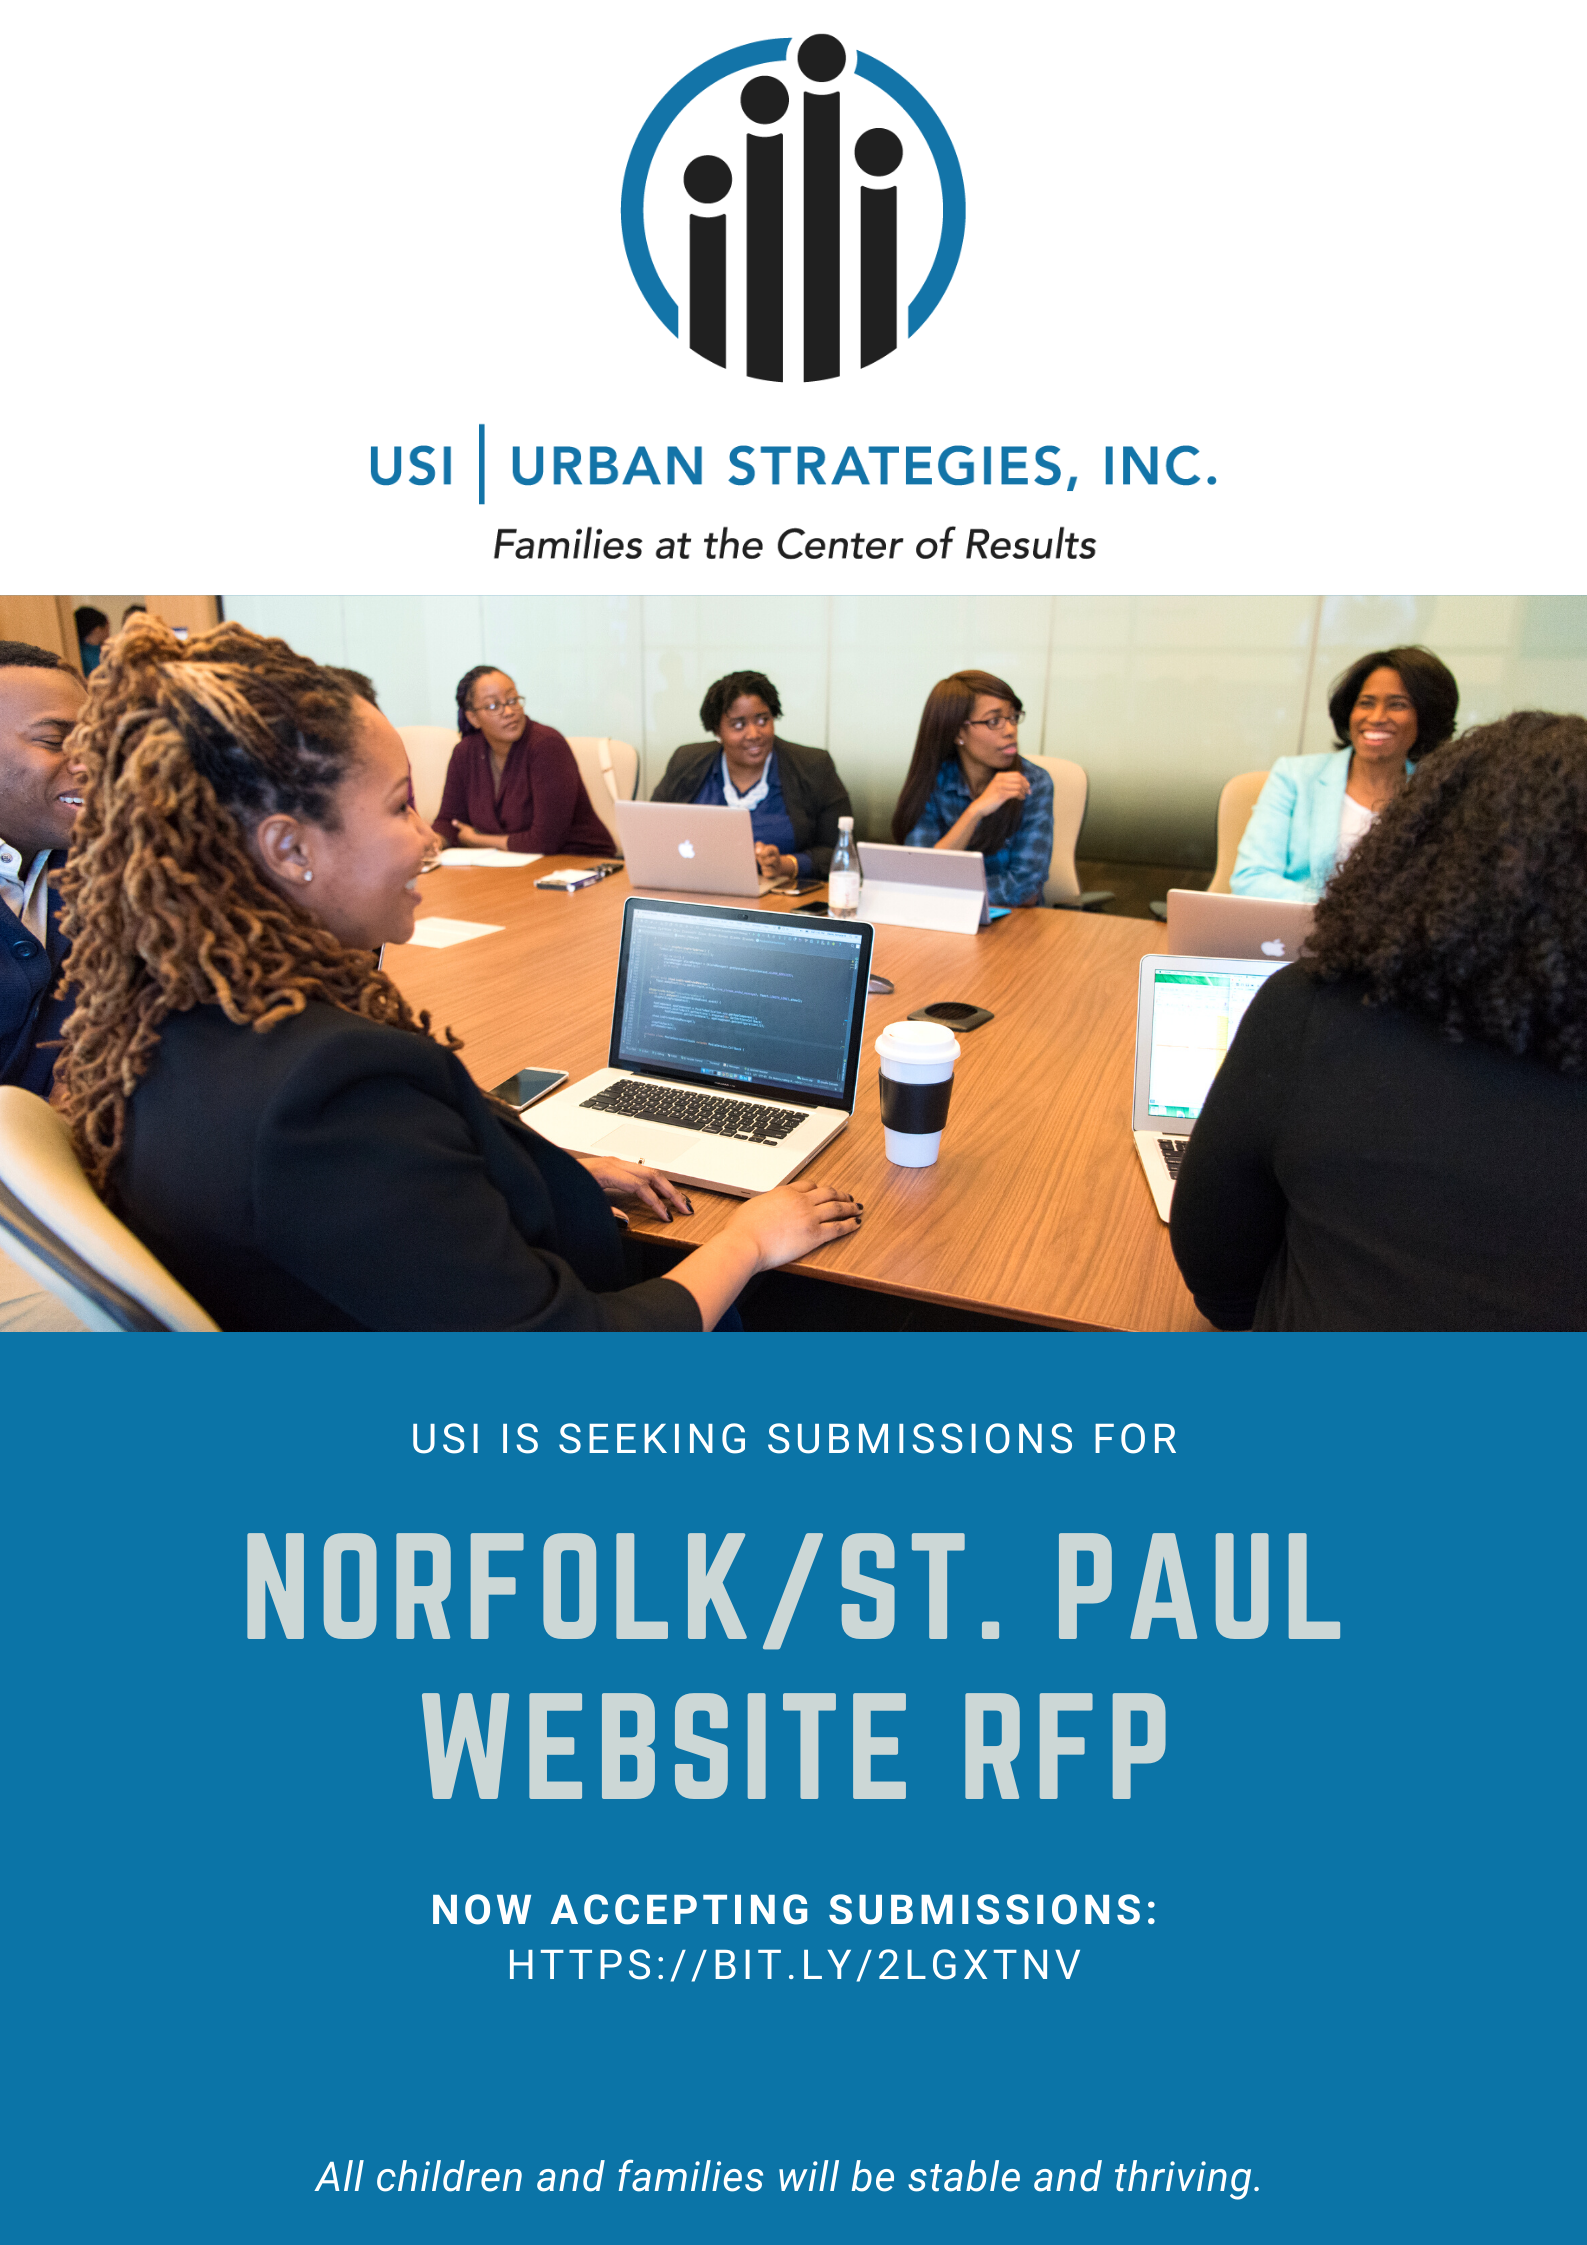 Seeking Submissions for St. Paul Website RFP